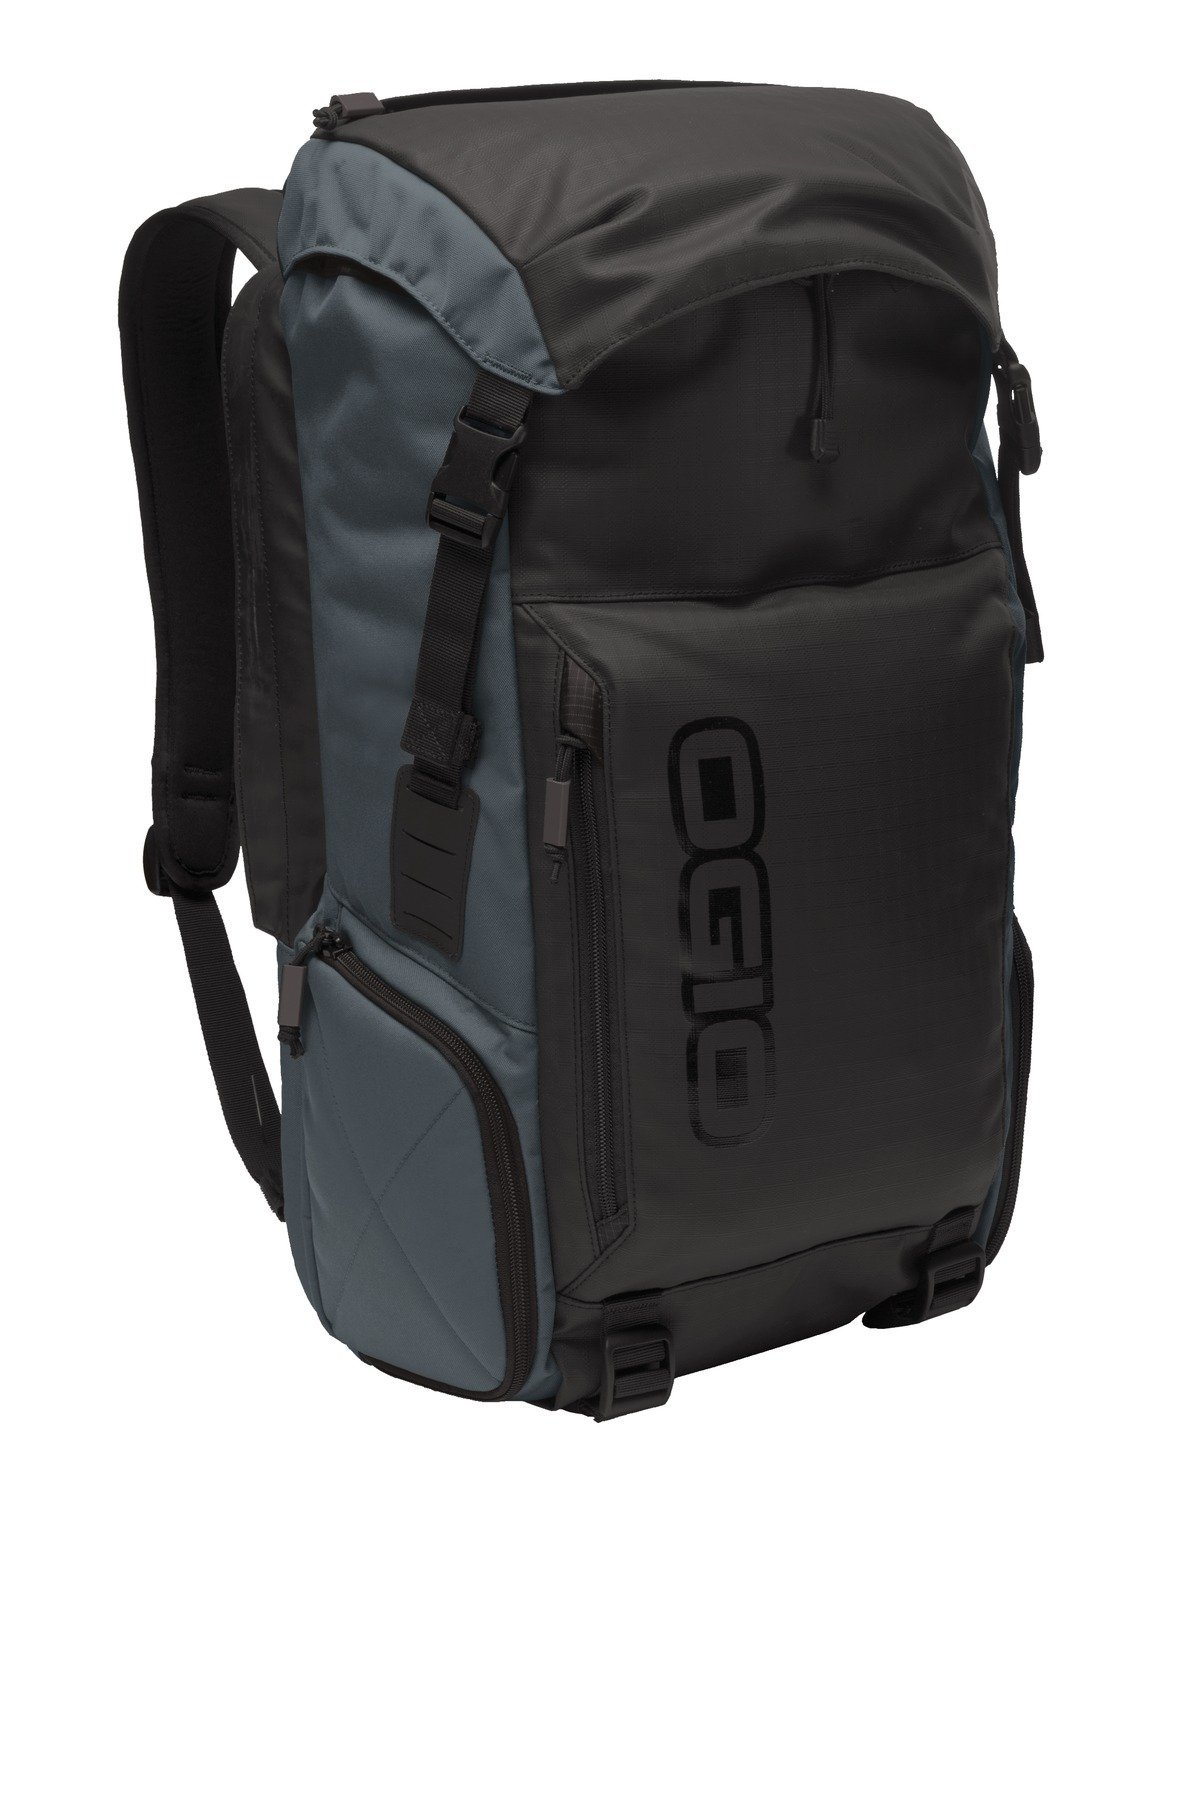 OGIO 423010 Torque 15'' Computer Laptop Backpack, Black/Grey by OGIO (Image #1)